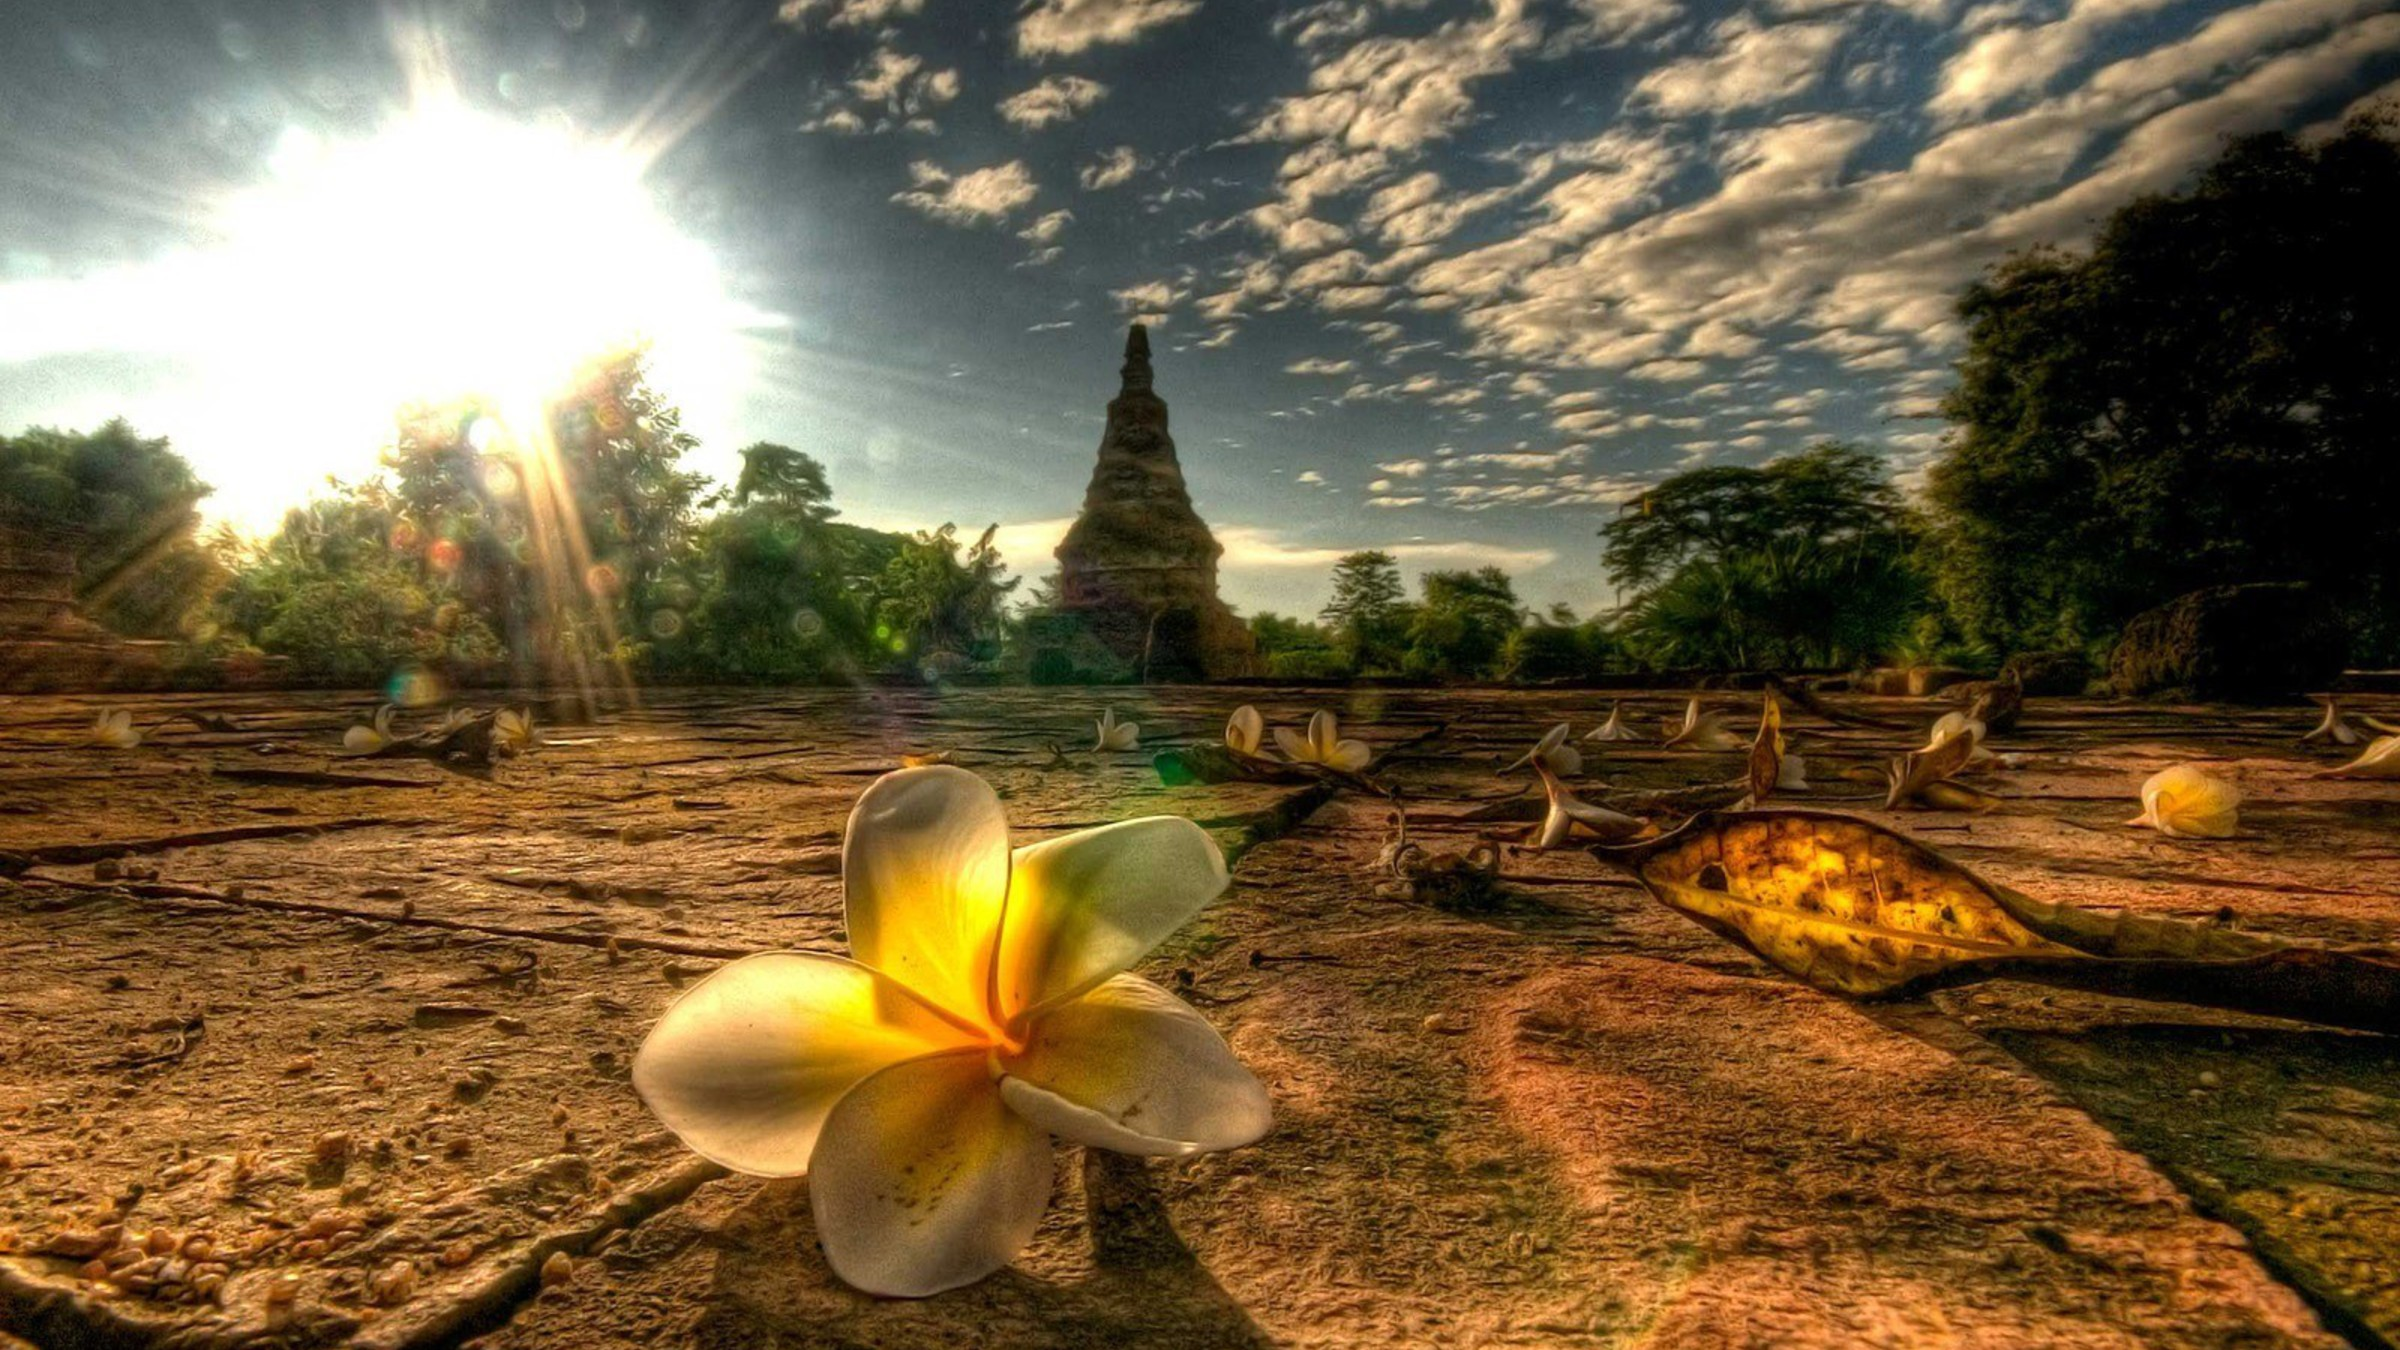 Fleurs paysages lumi re de la nature tha lande mai for Thai wallpaper gallery